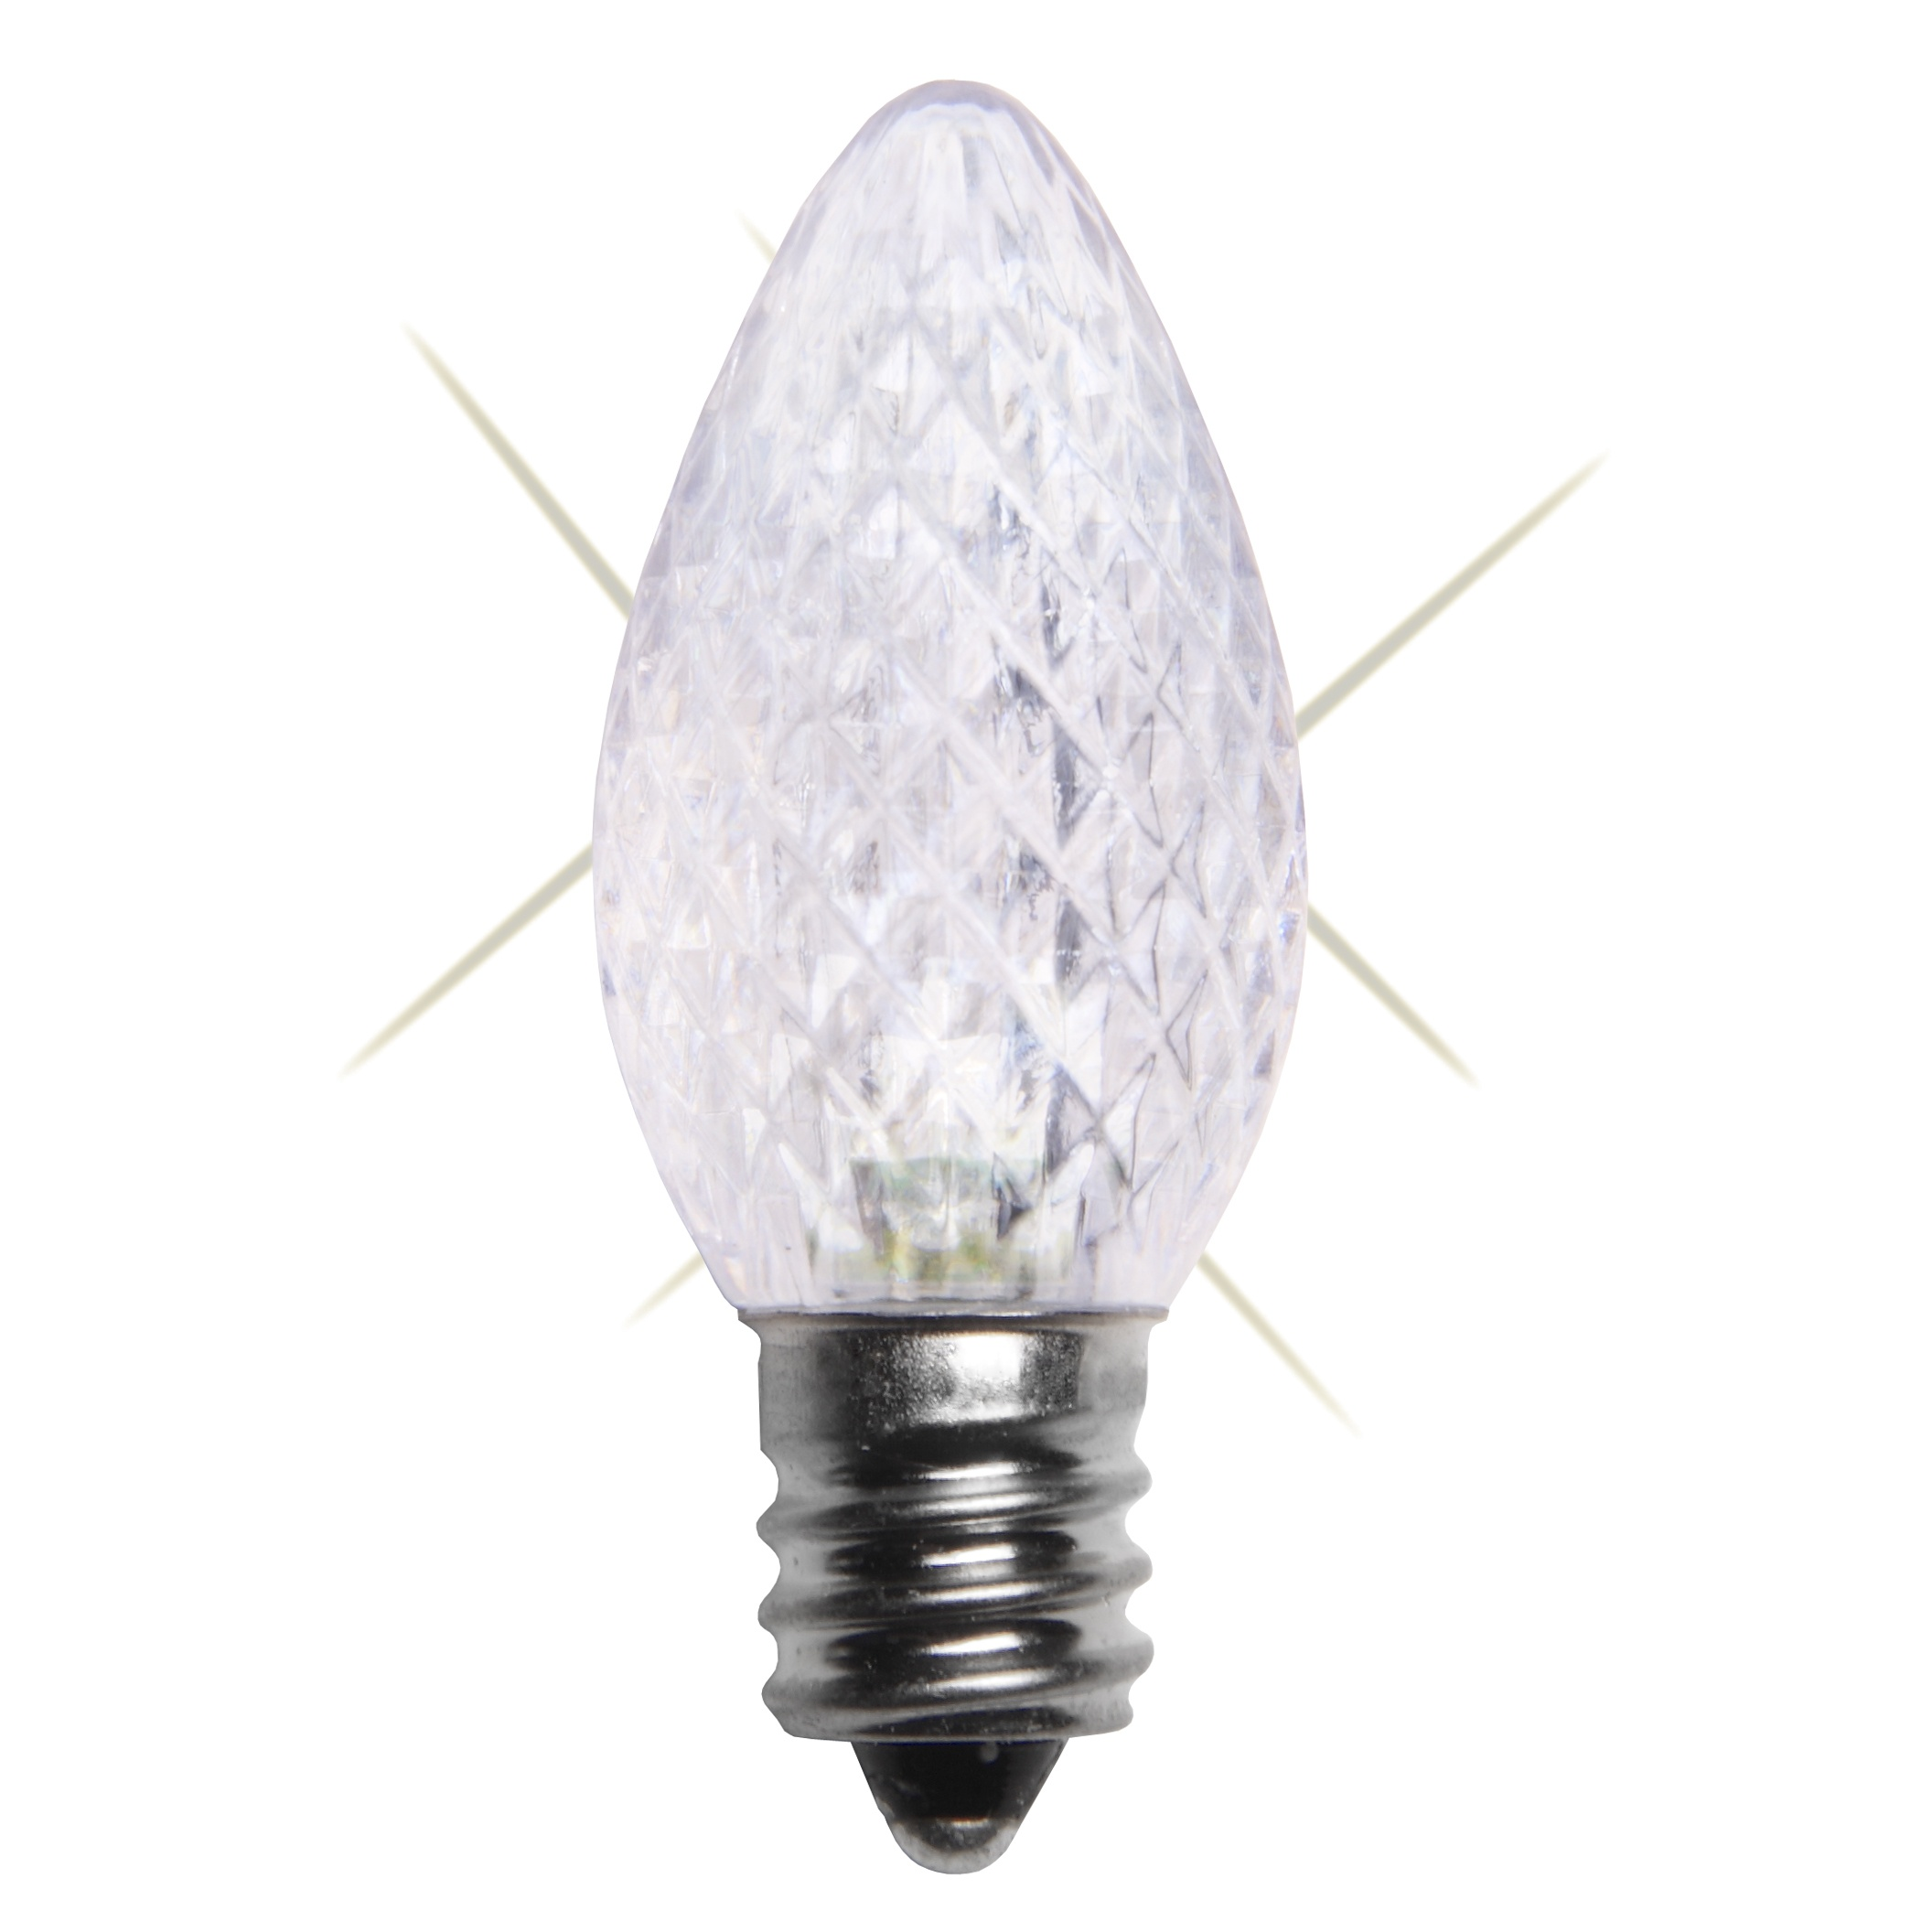 C7 Cool White LED Twinkle Christmas Bulb